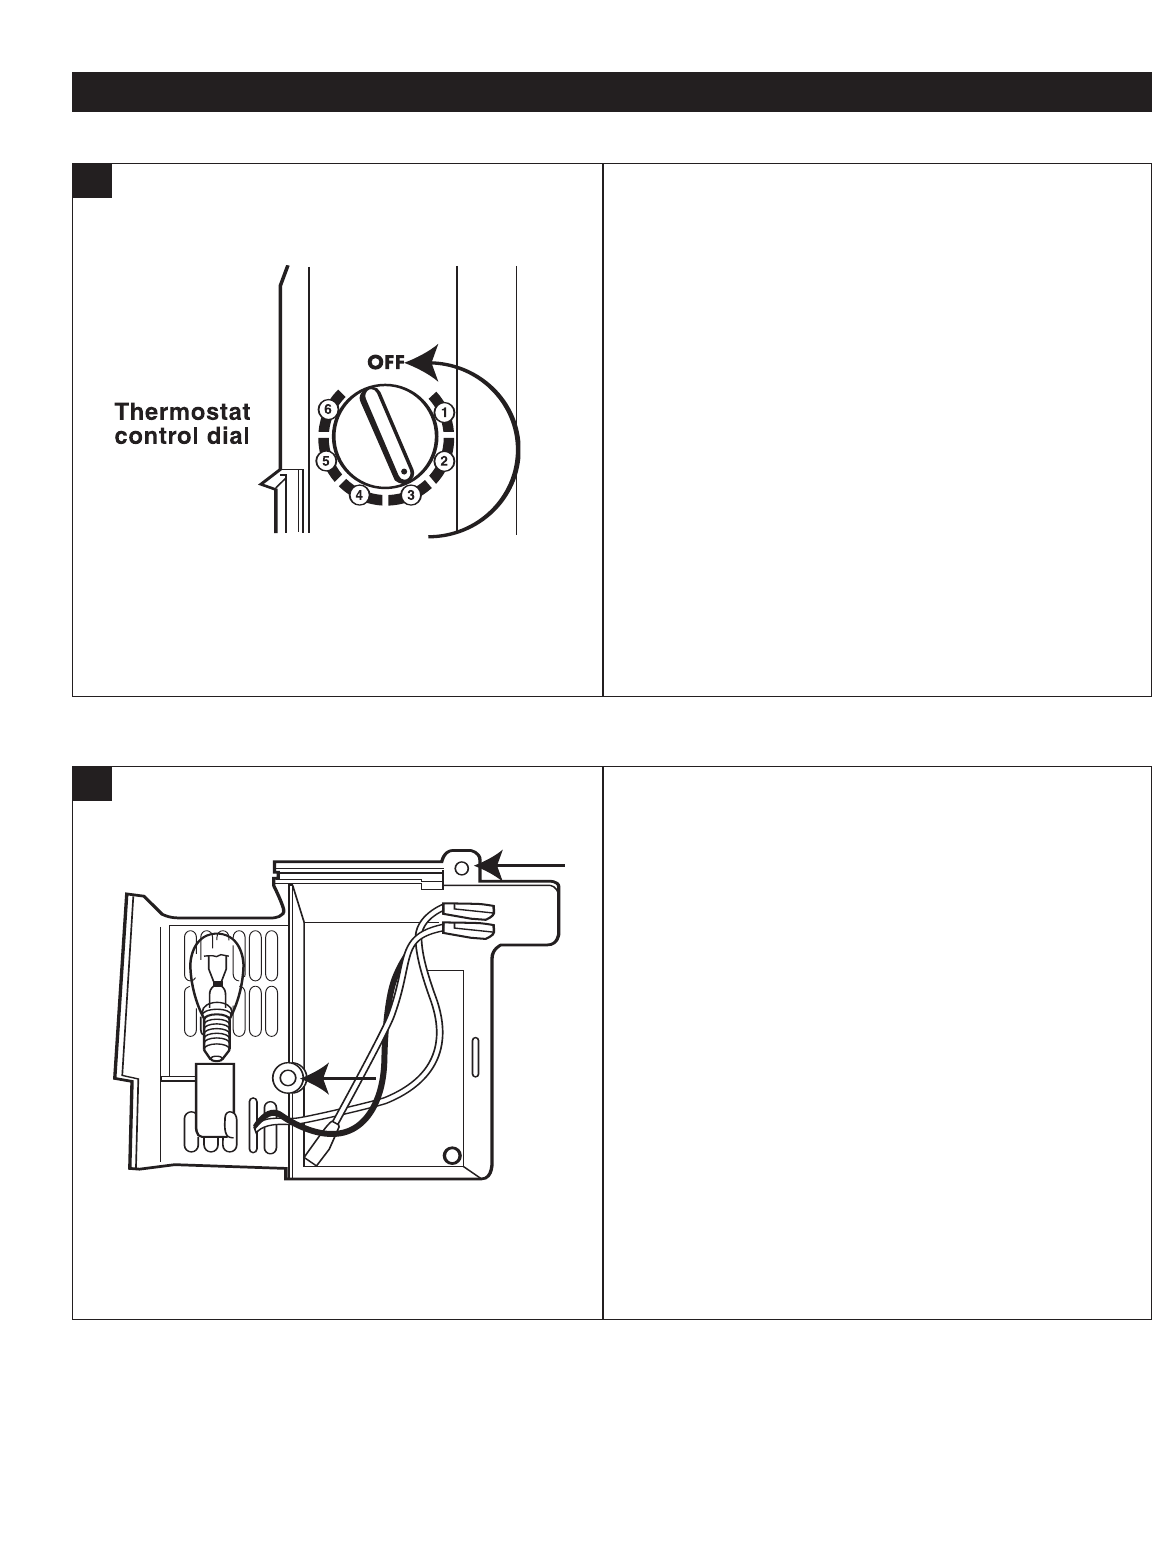 emerson sensi thermostat user manual